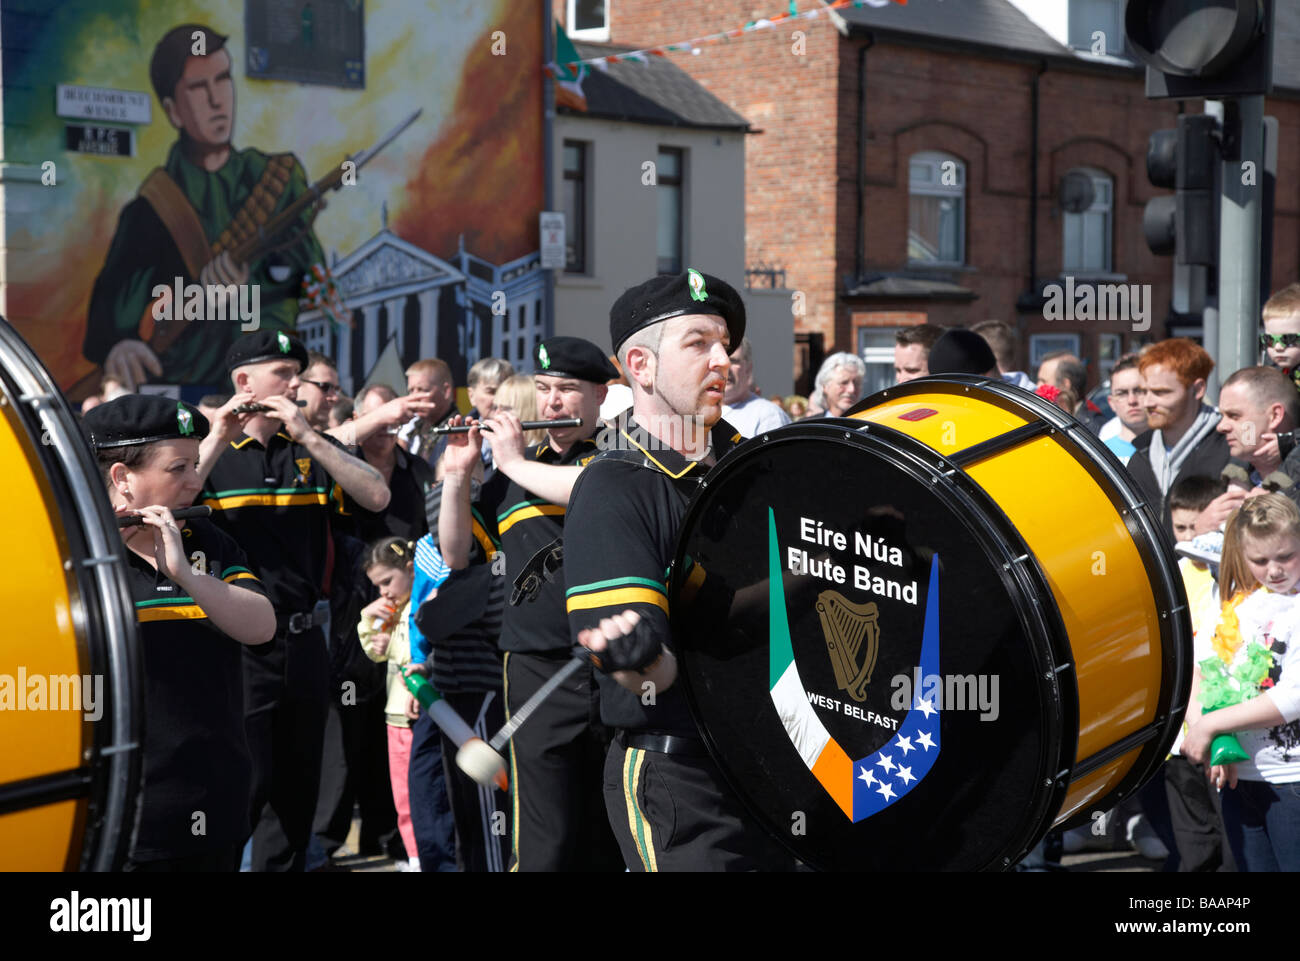 drummer of the eire nua republican flute band march down the falls road on Easter Sunday during the Easter Rising - Stock Image